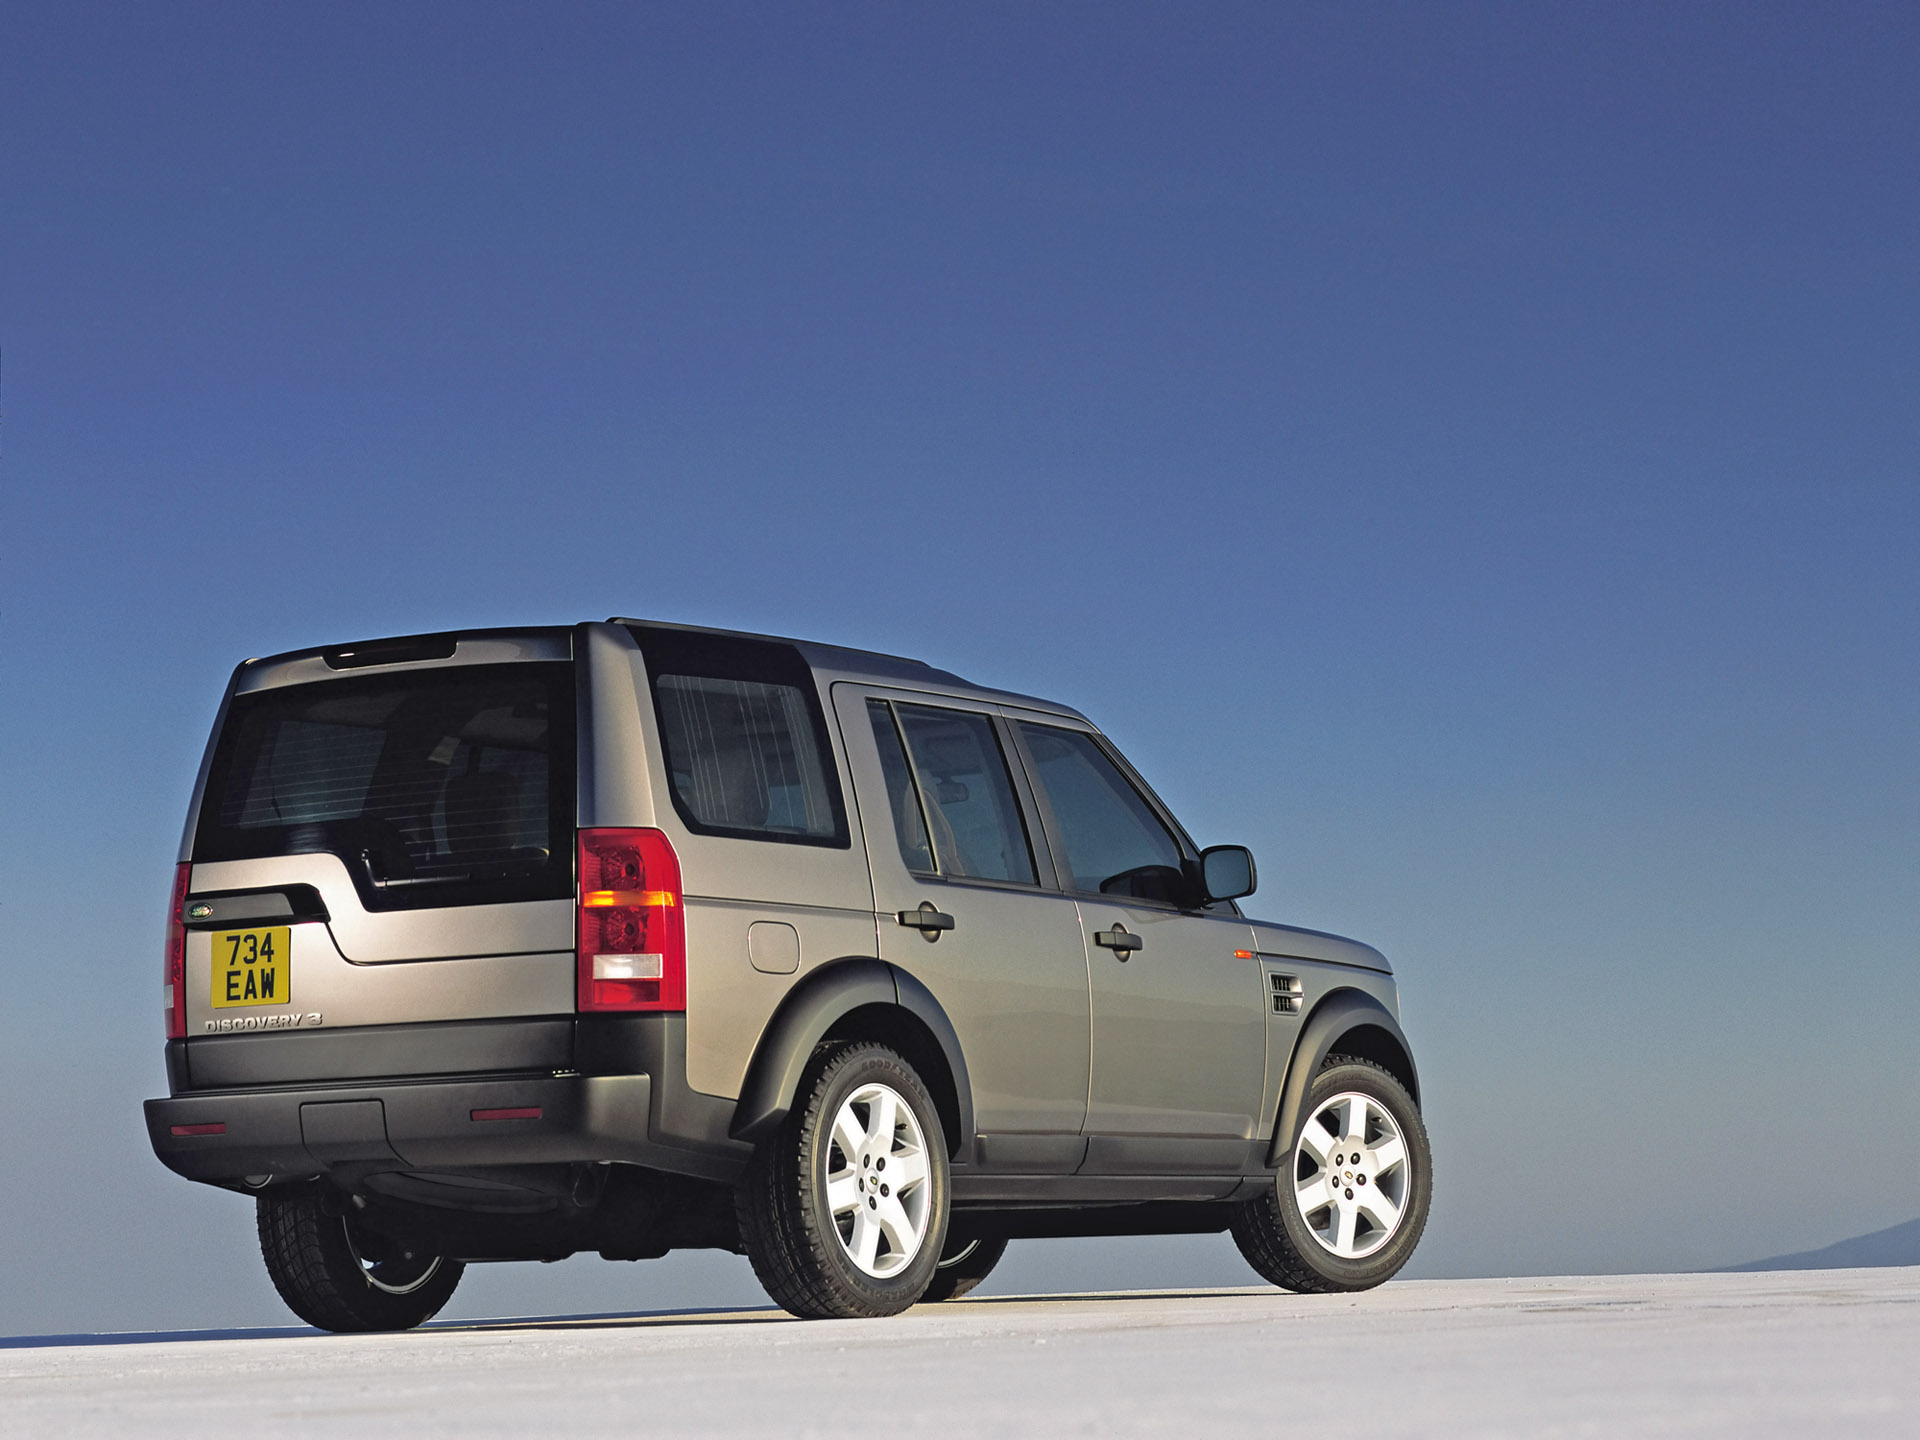 2005 Land Rover Discovery 3 #4